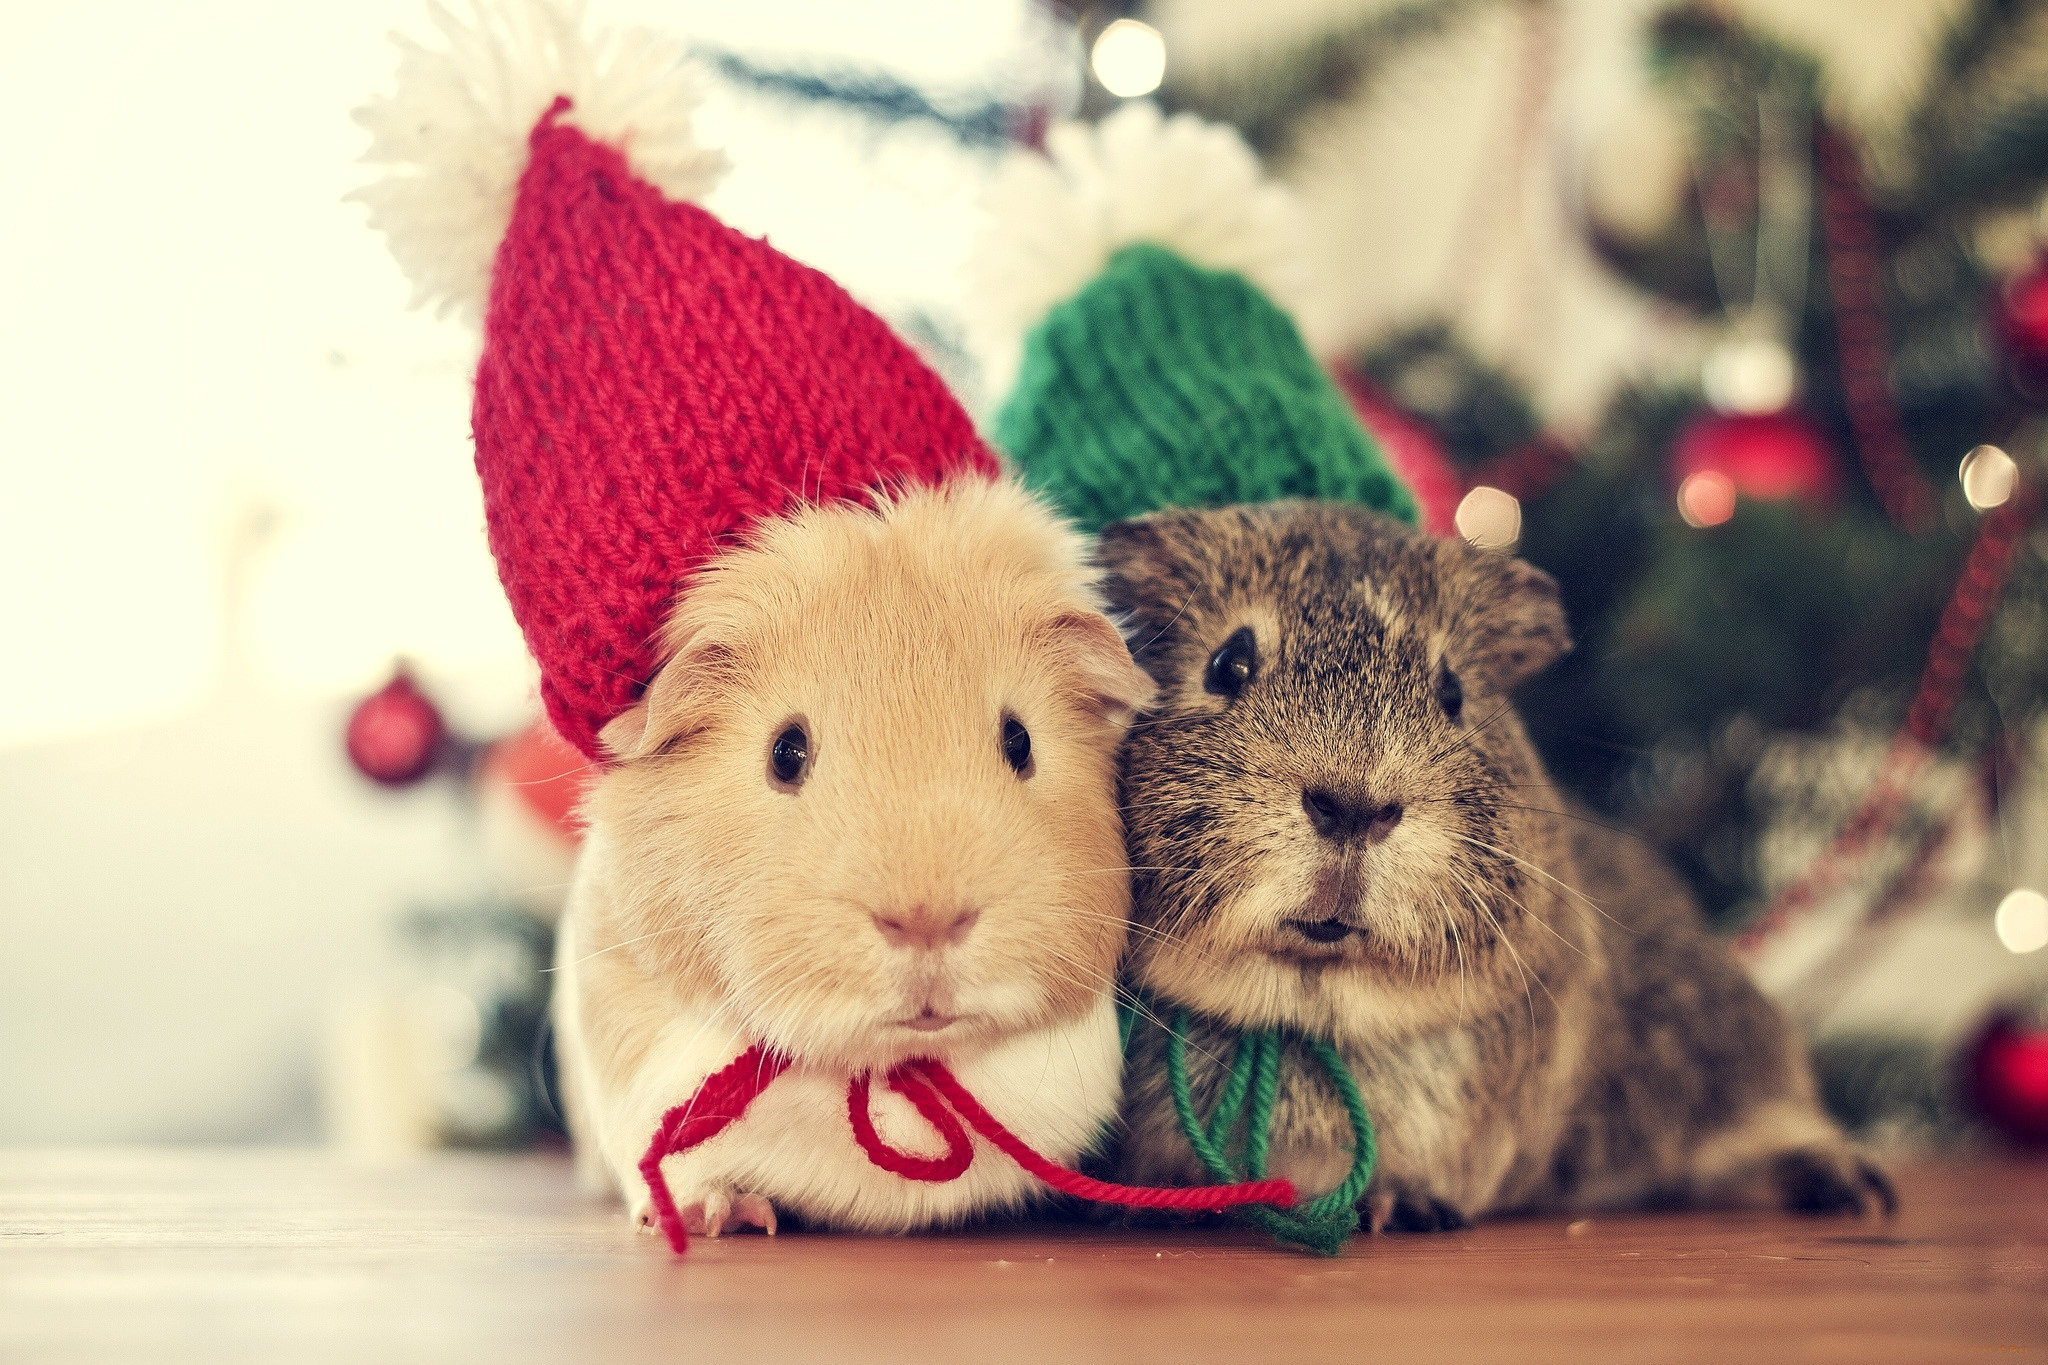 Christmas Animals Cute Winter Cold Cozy Couple Holiday Mouse wallpaper 2048x1365